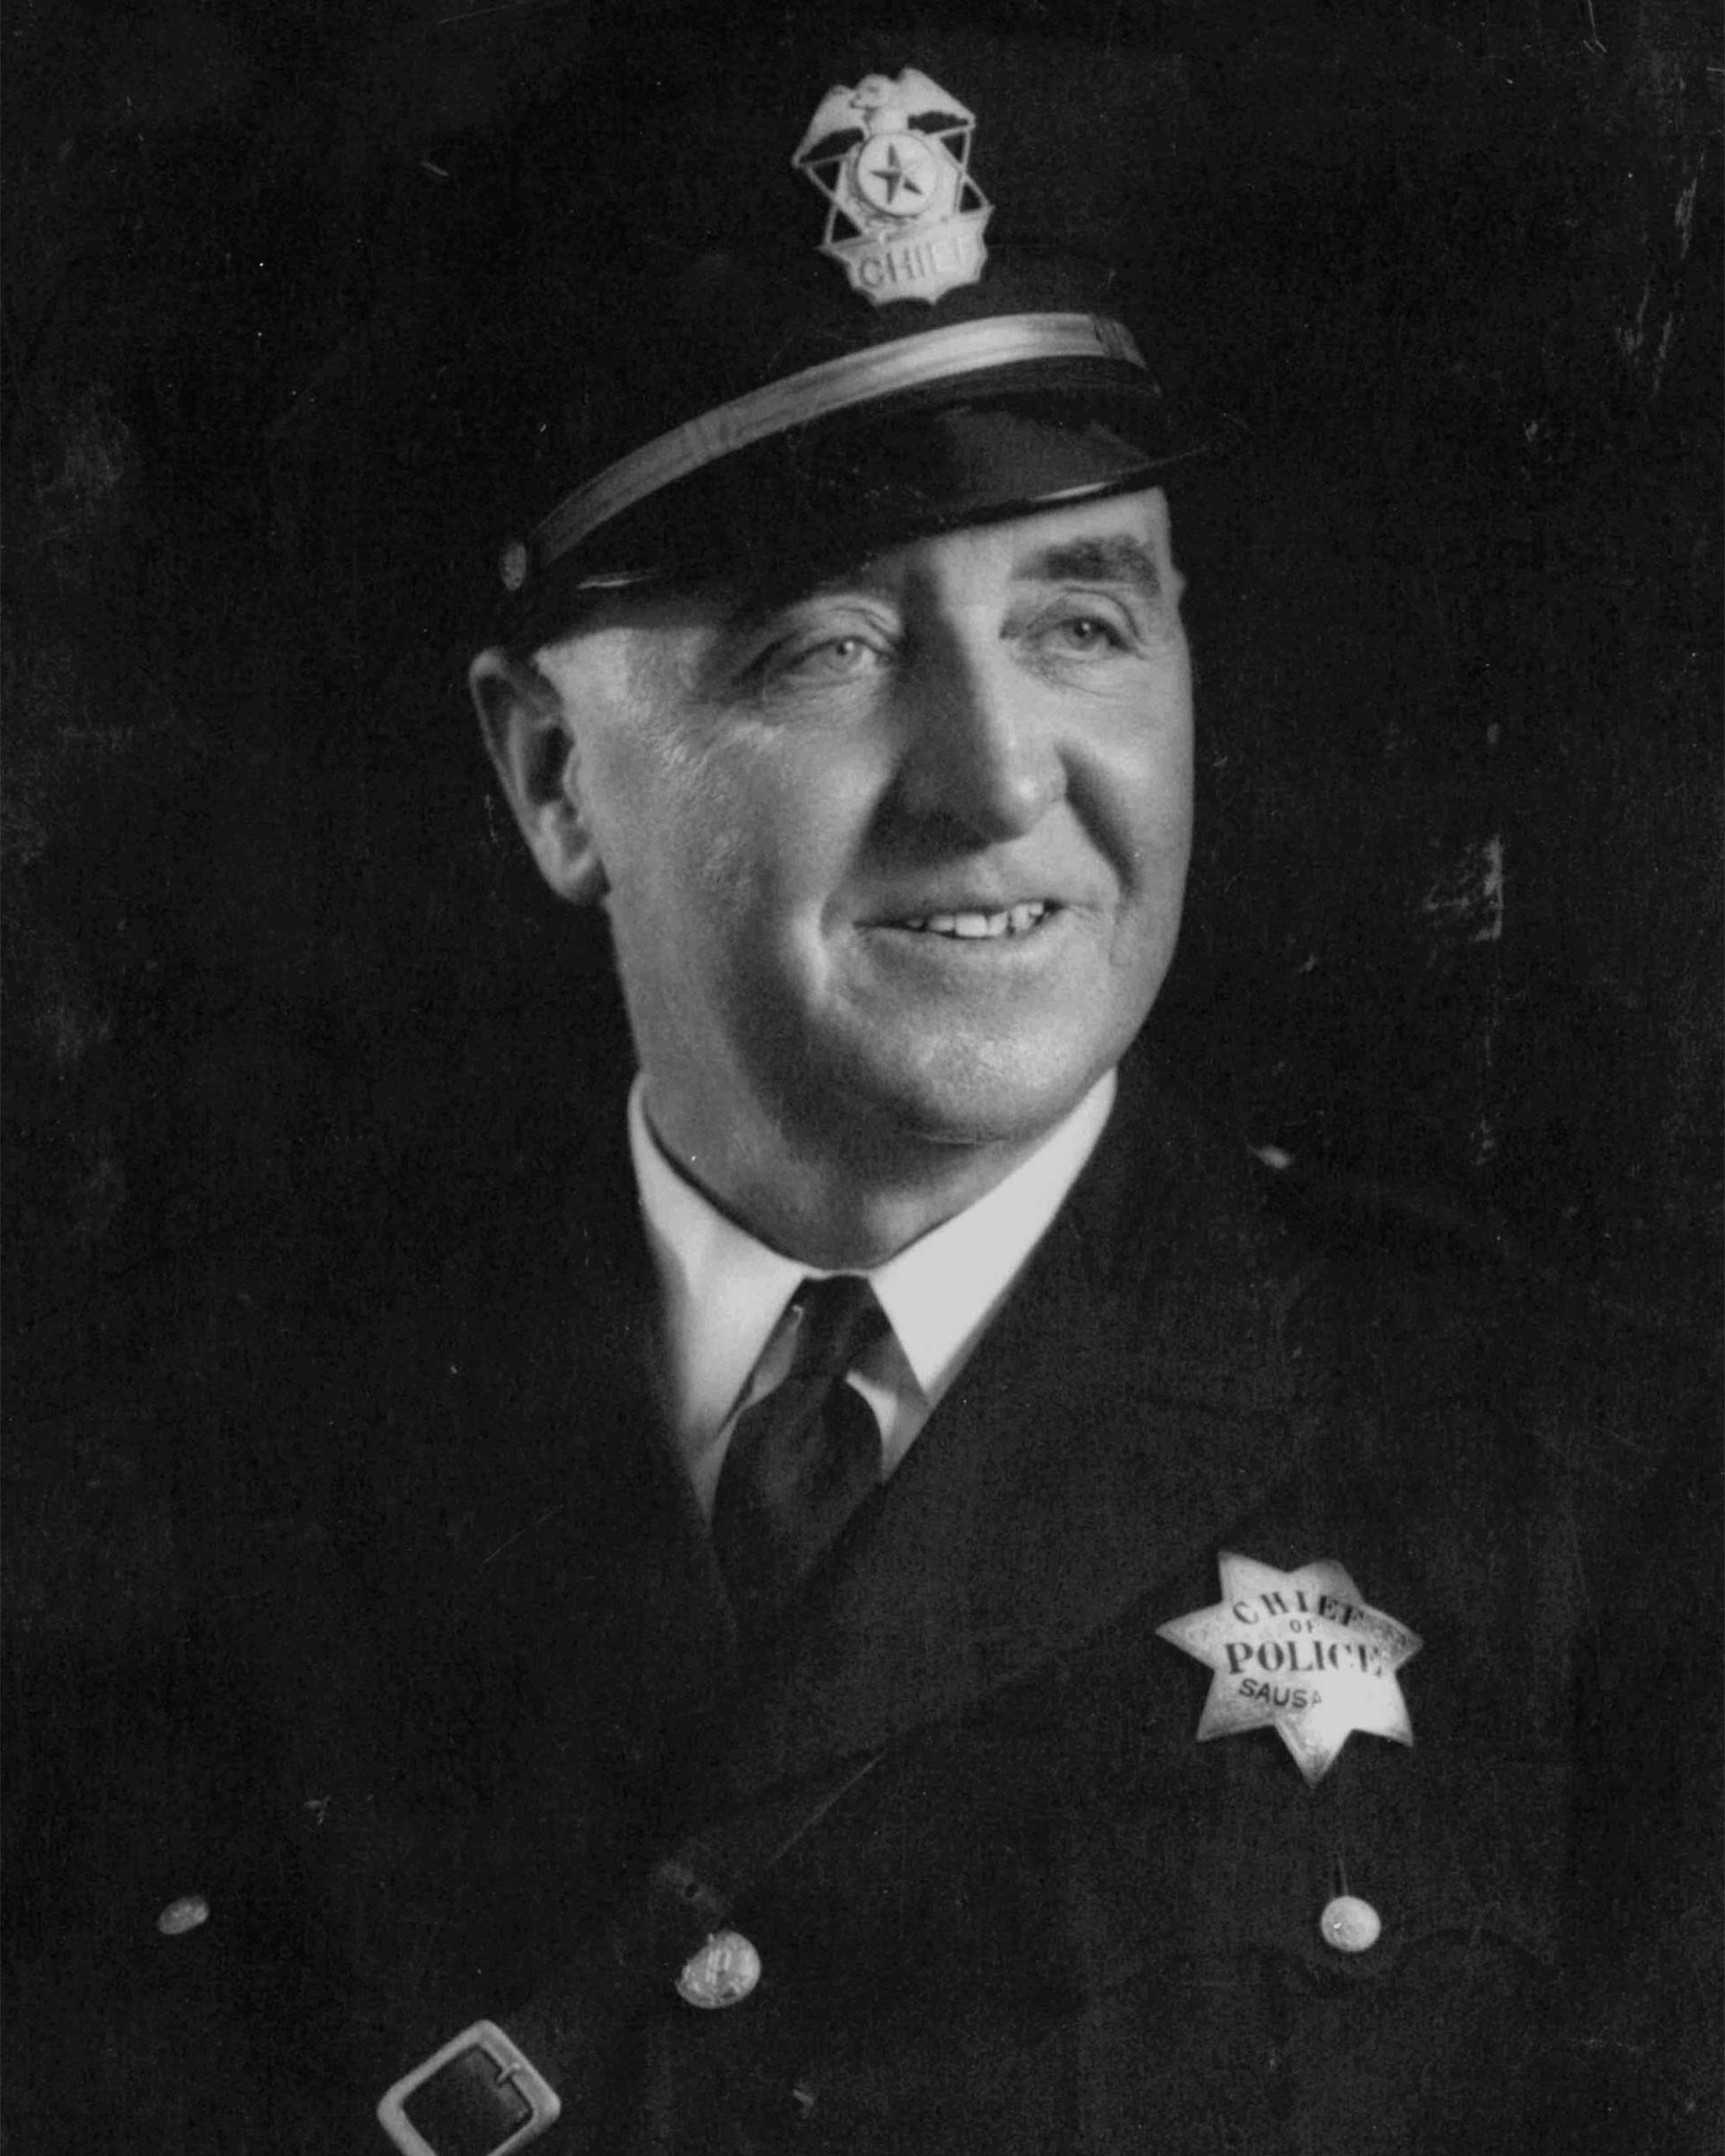 Chief James Doyle (1942-1953)